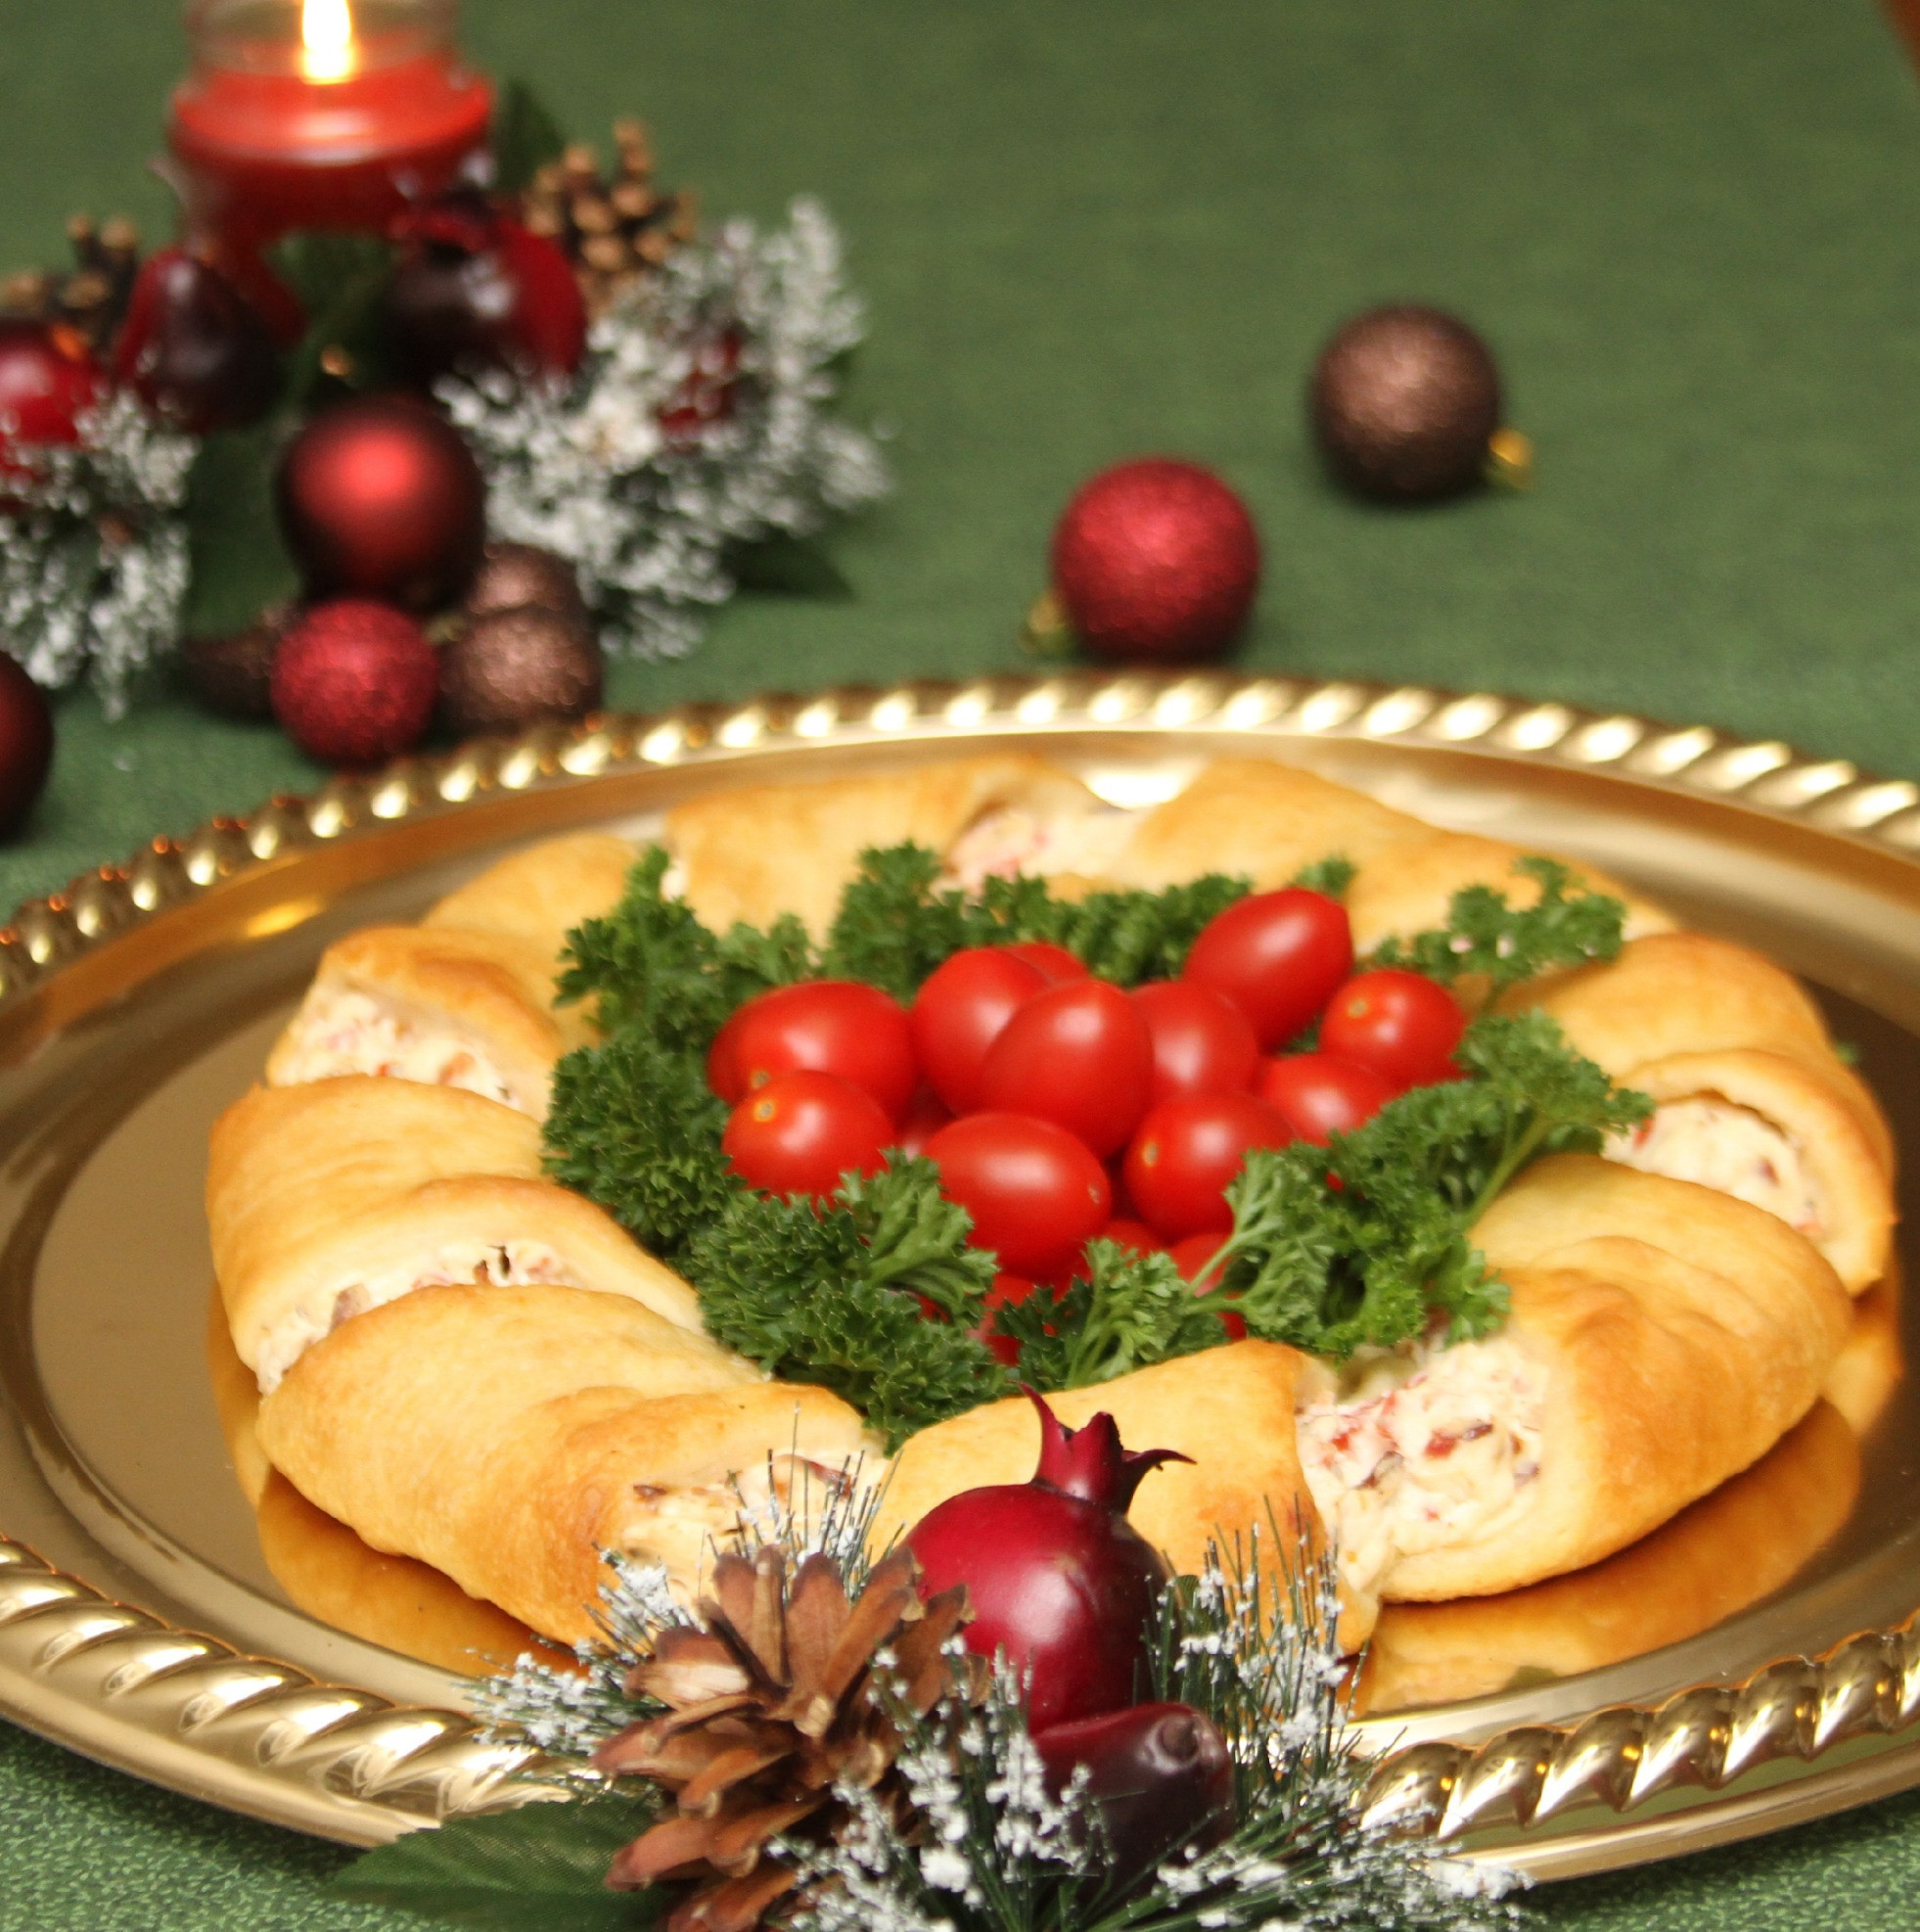 Christmas Recipes Appetizers  Christmas Wreath Crescent Rolls Appetizer Recipes Just